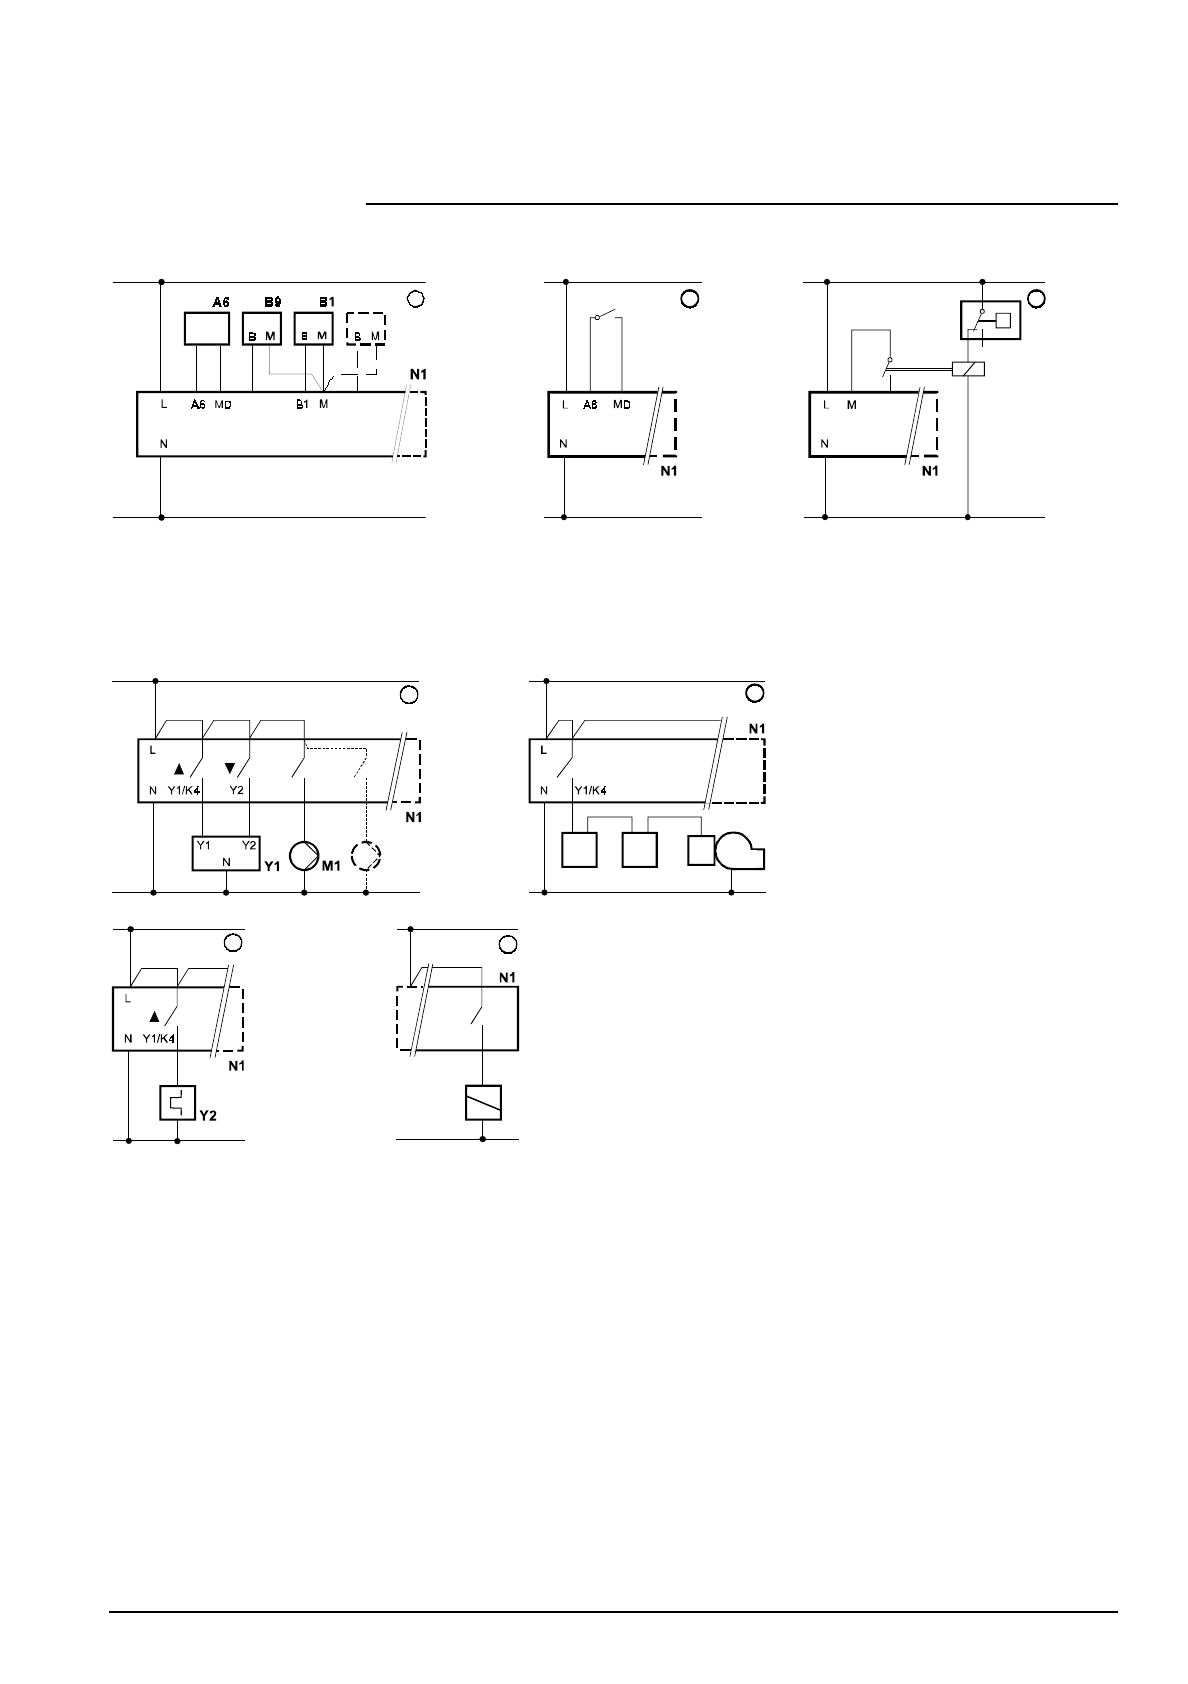 602007 Rectifier Wiring Diagram For Star